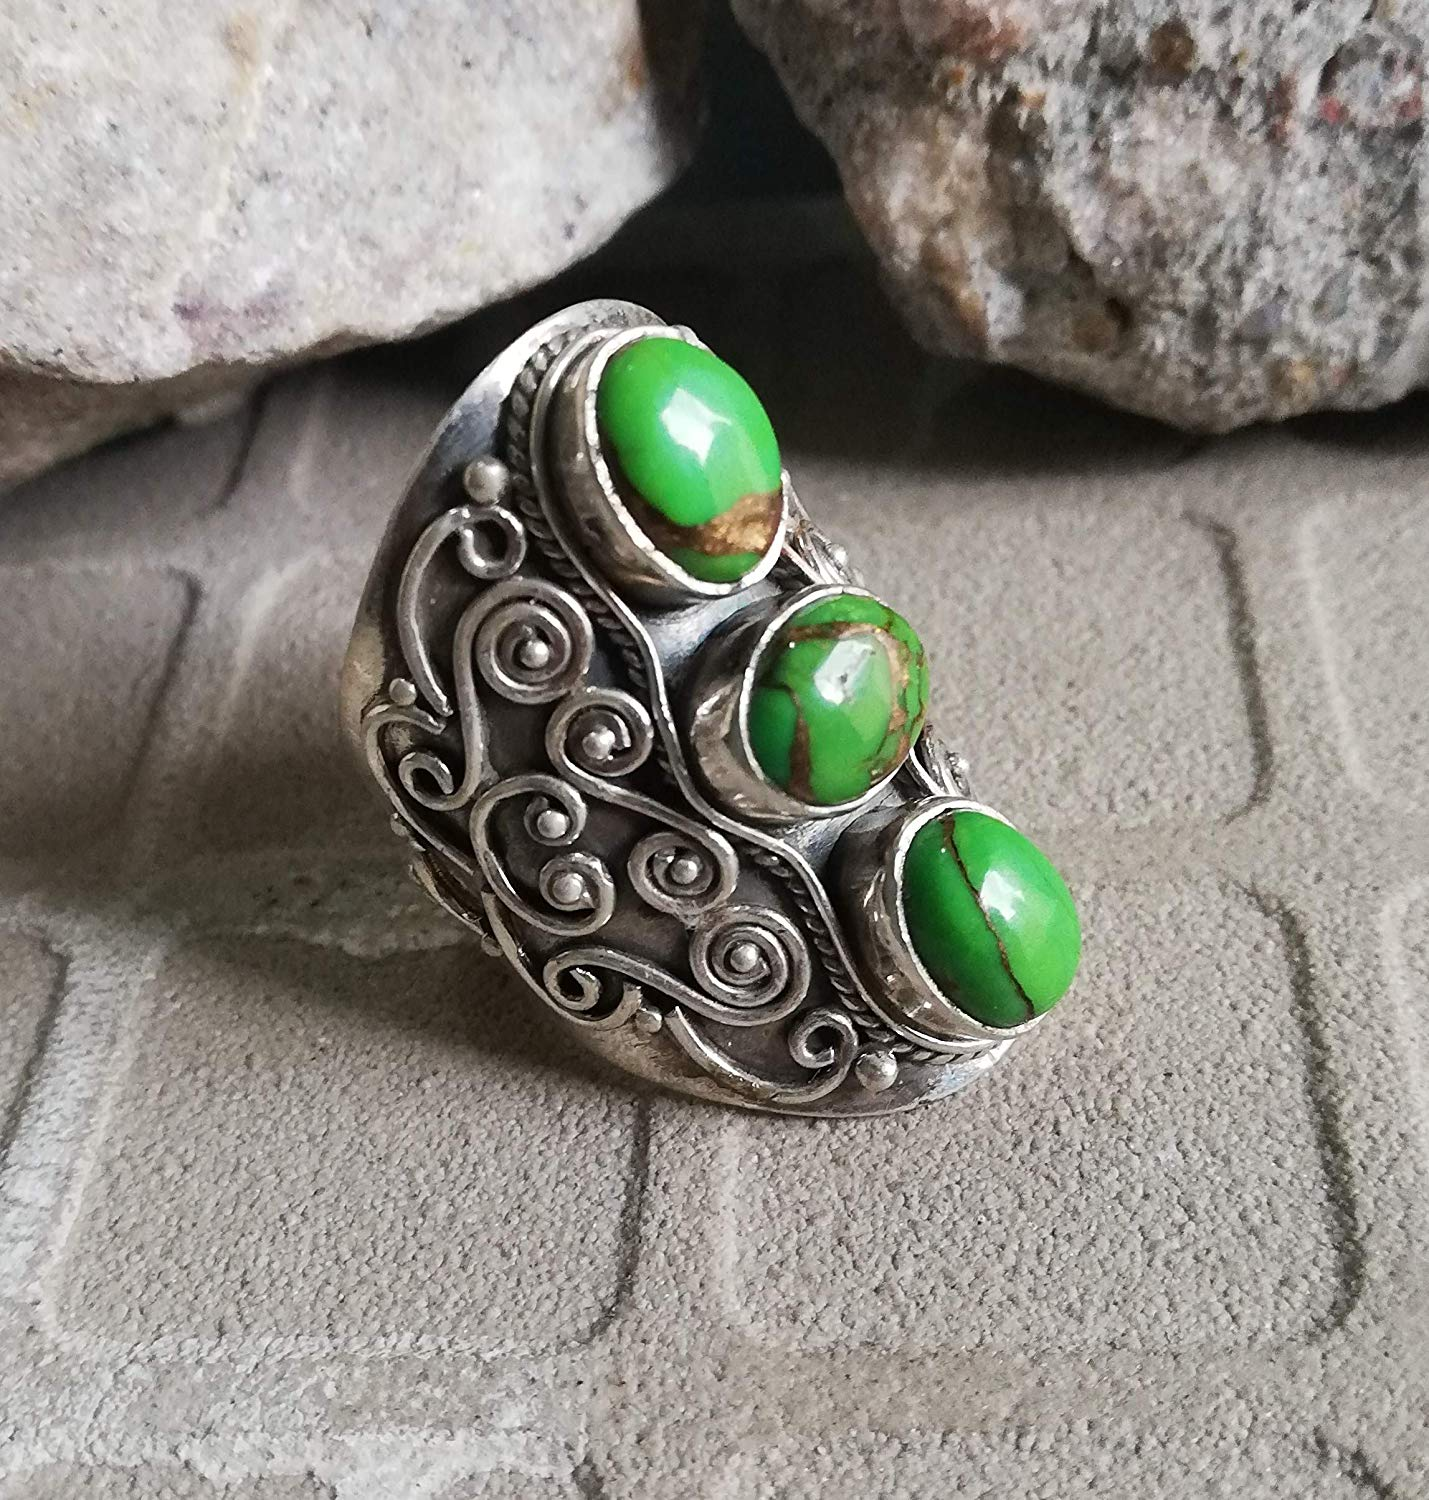 Green Copper Turquoise Ring, 925 Sterling Silver, Antique Ring, Victorian Ring, Three Stone Ring, Ultimate Ring, Wide Band Ring, Unique Piece, Rare Ring, Long Ring, Classic Elegance Ring Filigree Ring